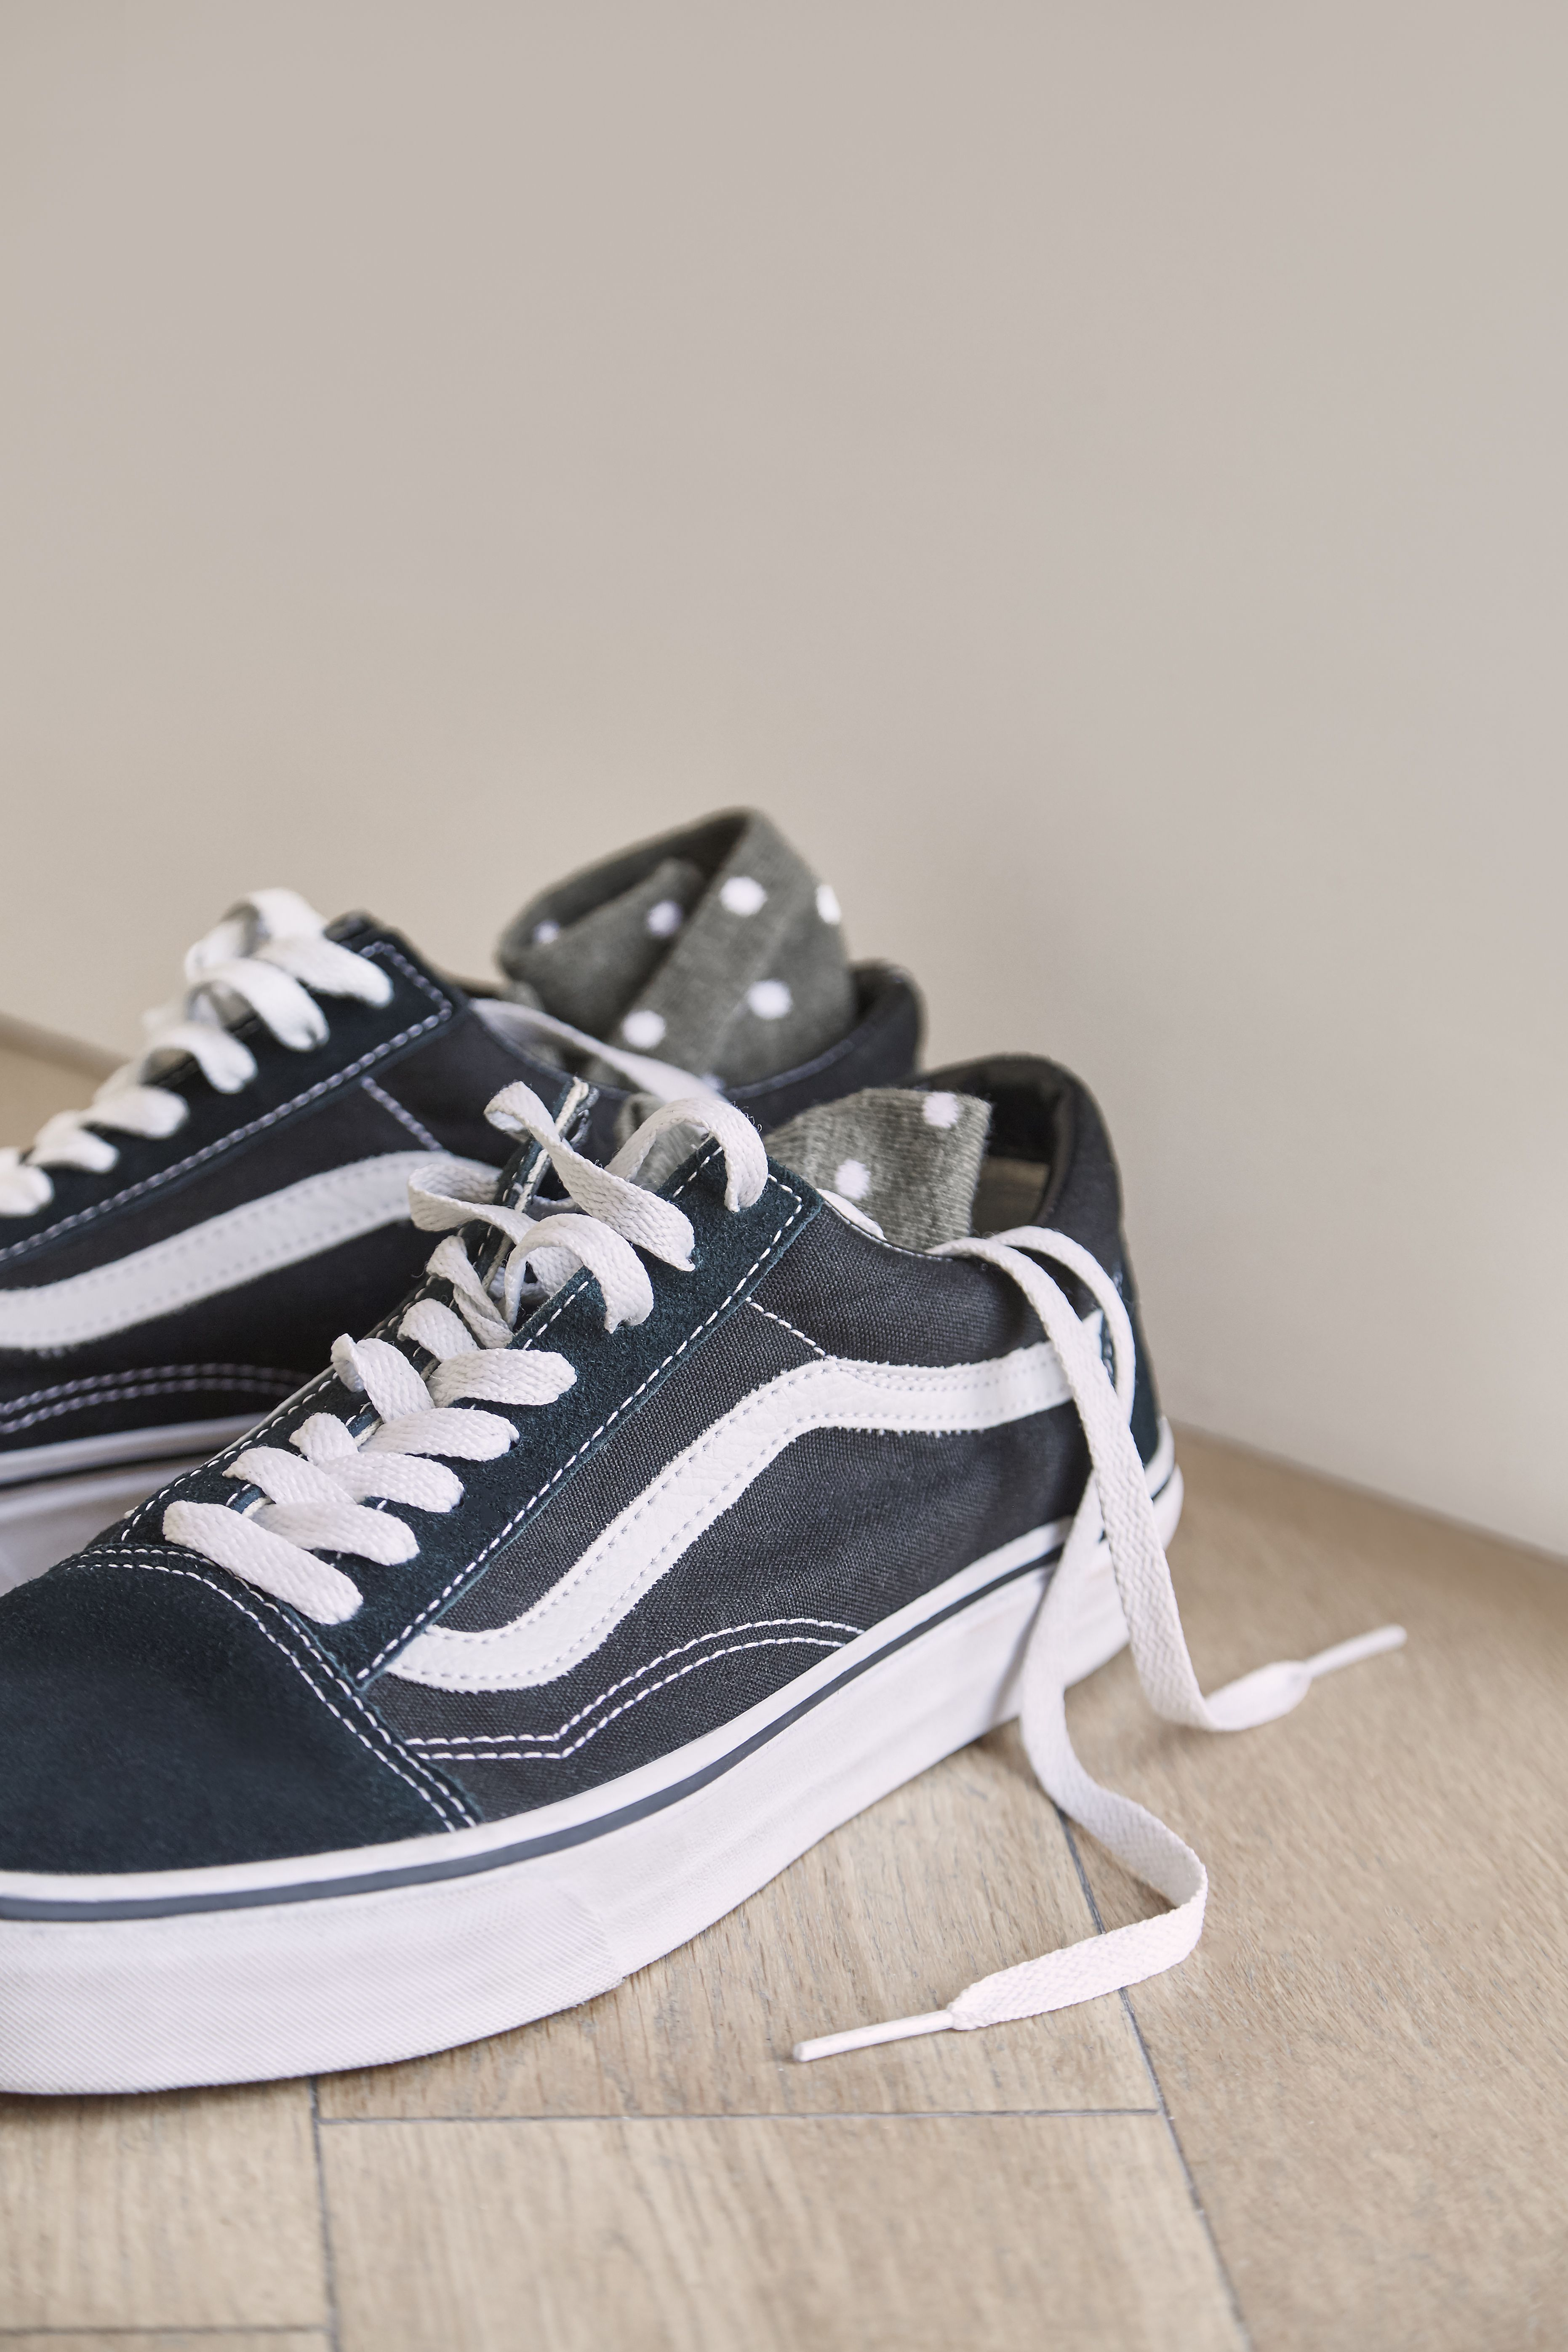 Shoes Outlet - Vans Old Skool Black Womens Suede Canvas Trainers